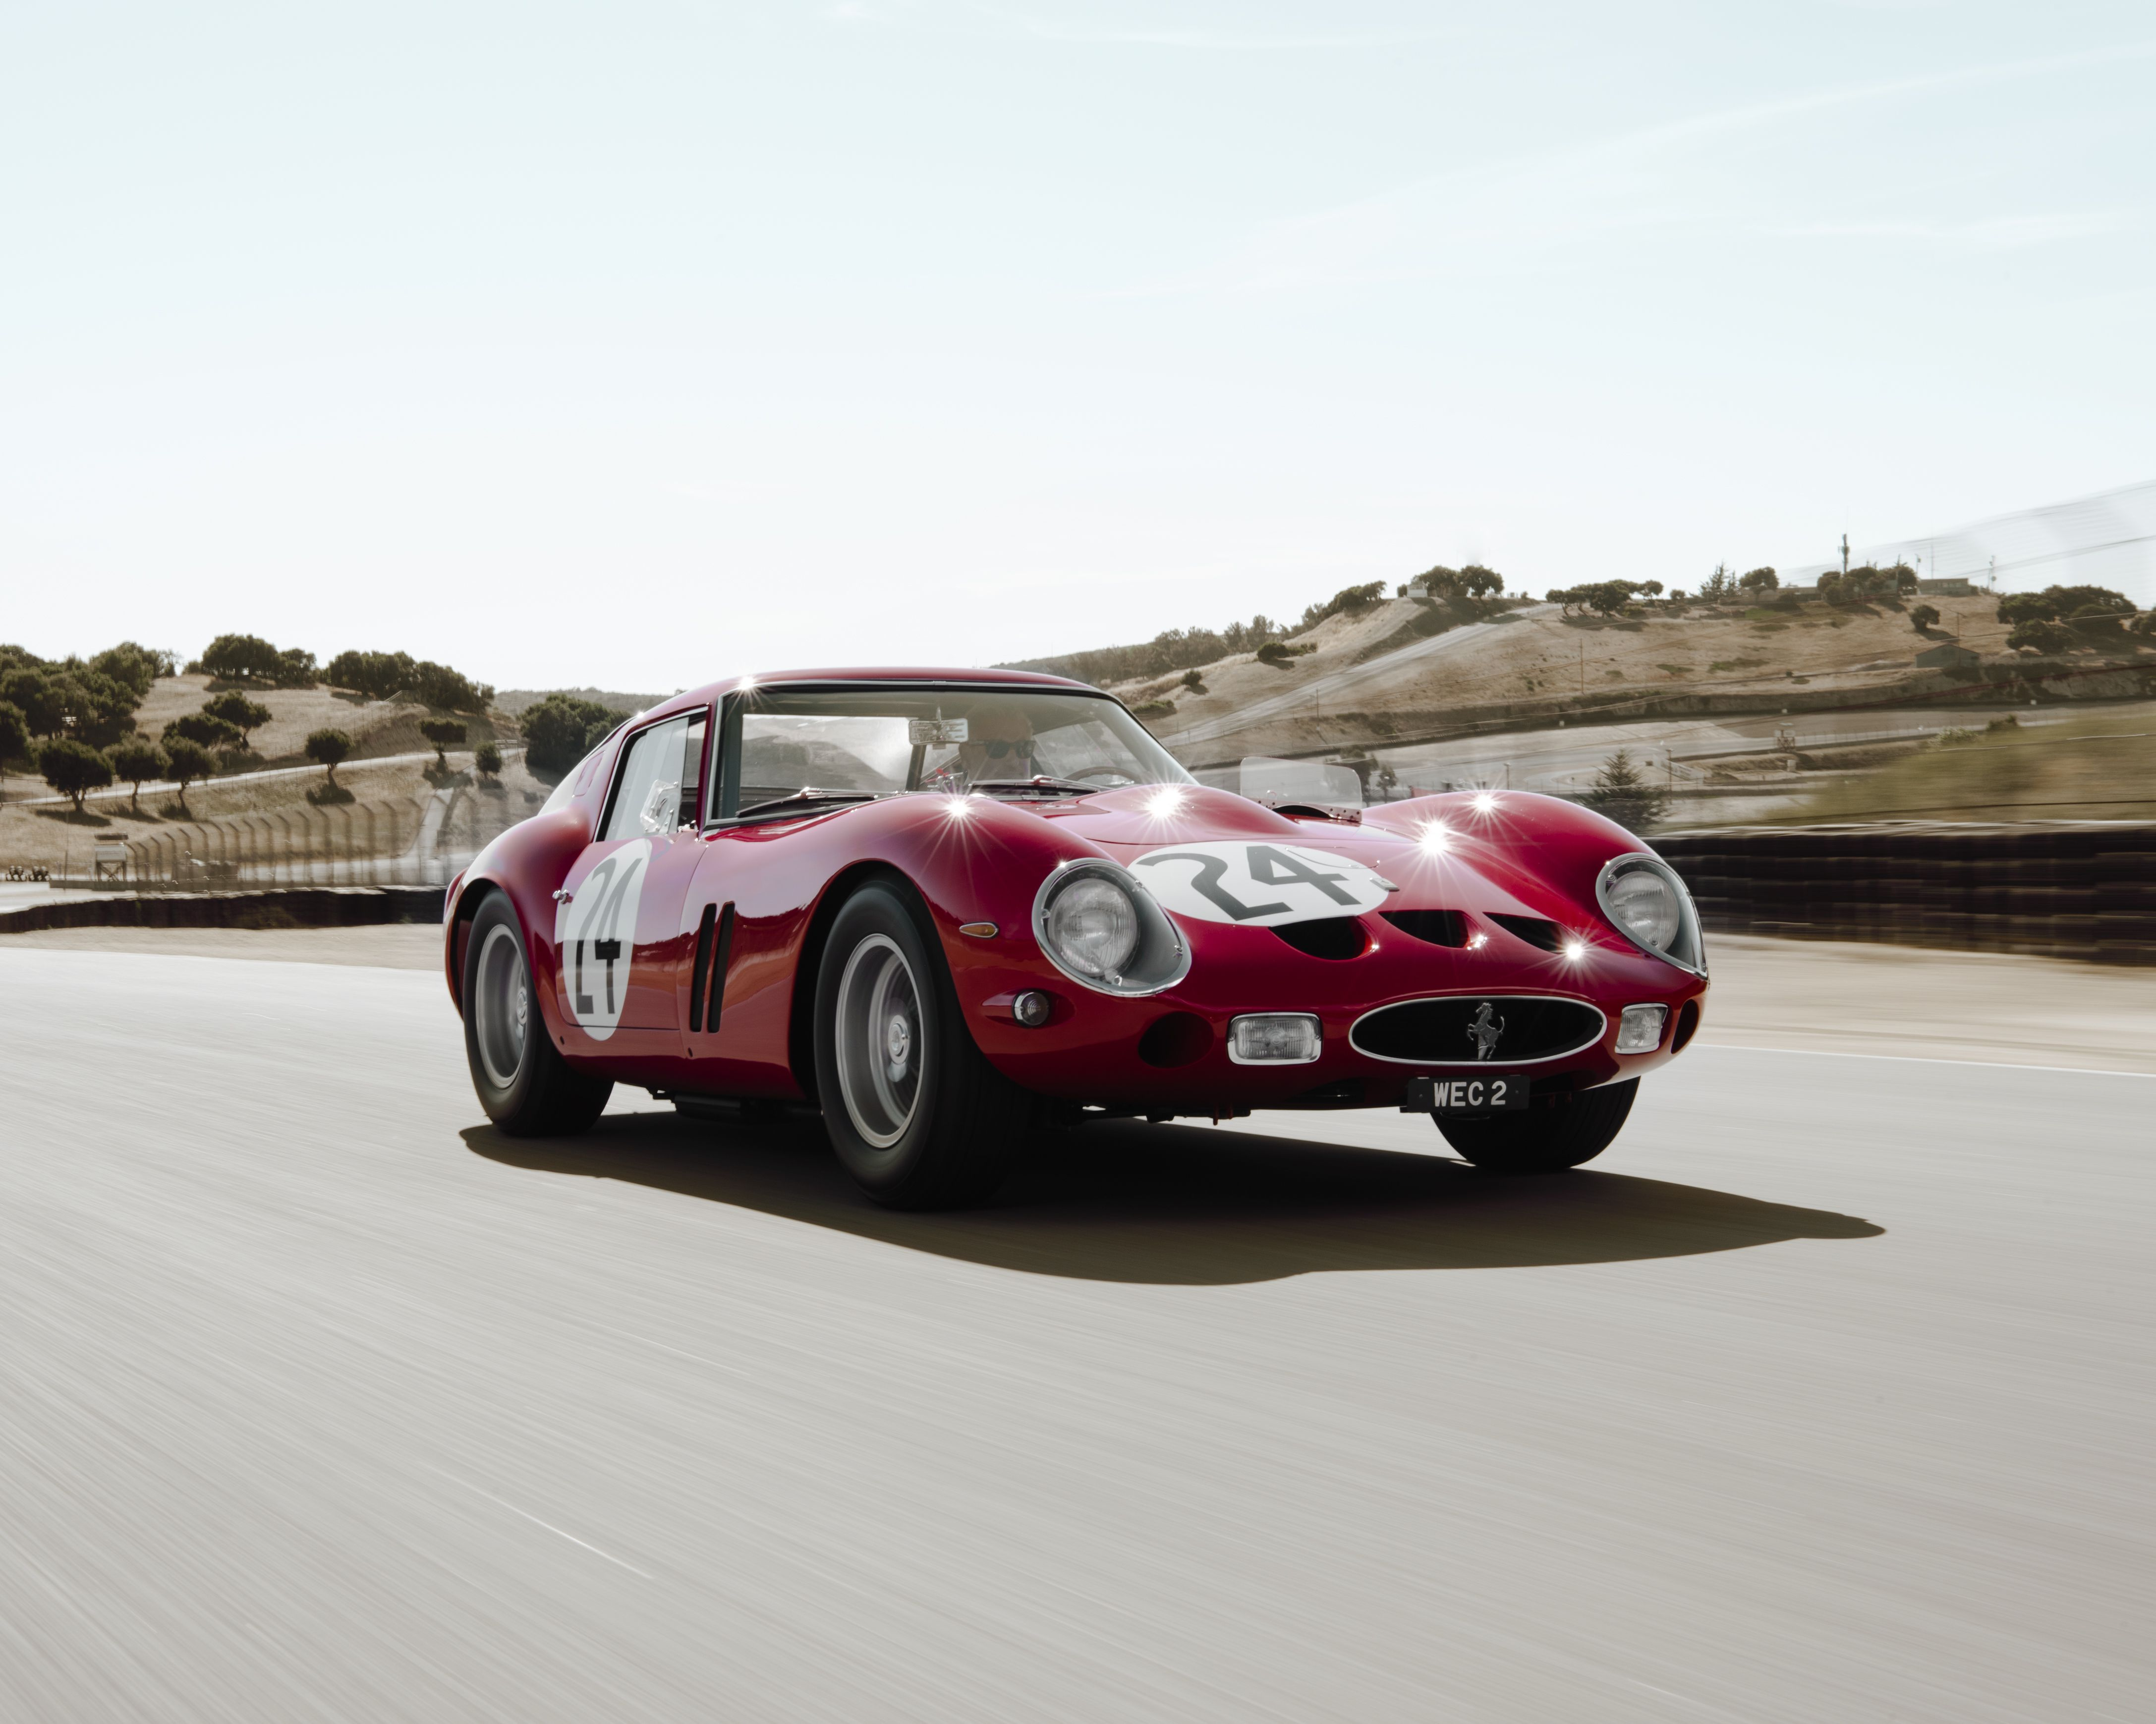 How The Ferrari 250 Gto Became The Most Valuable Car Of All Time